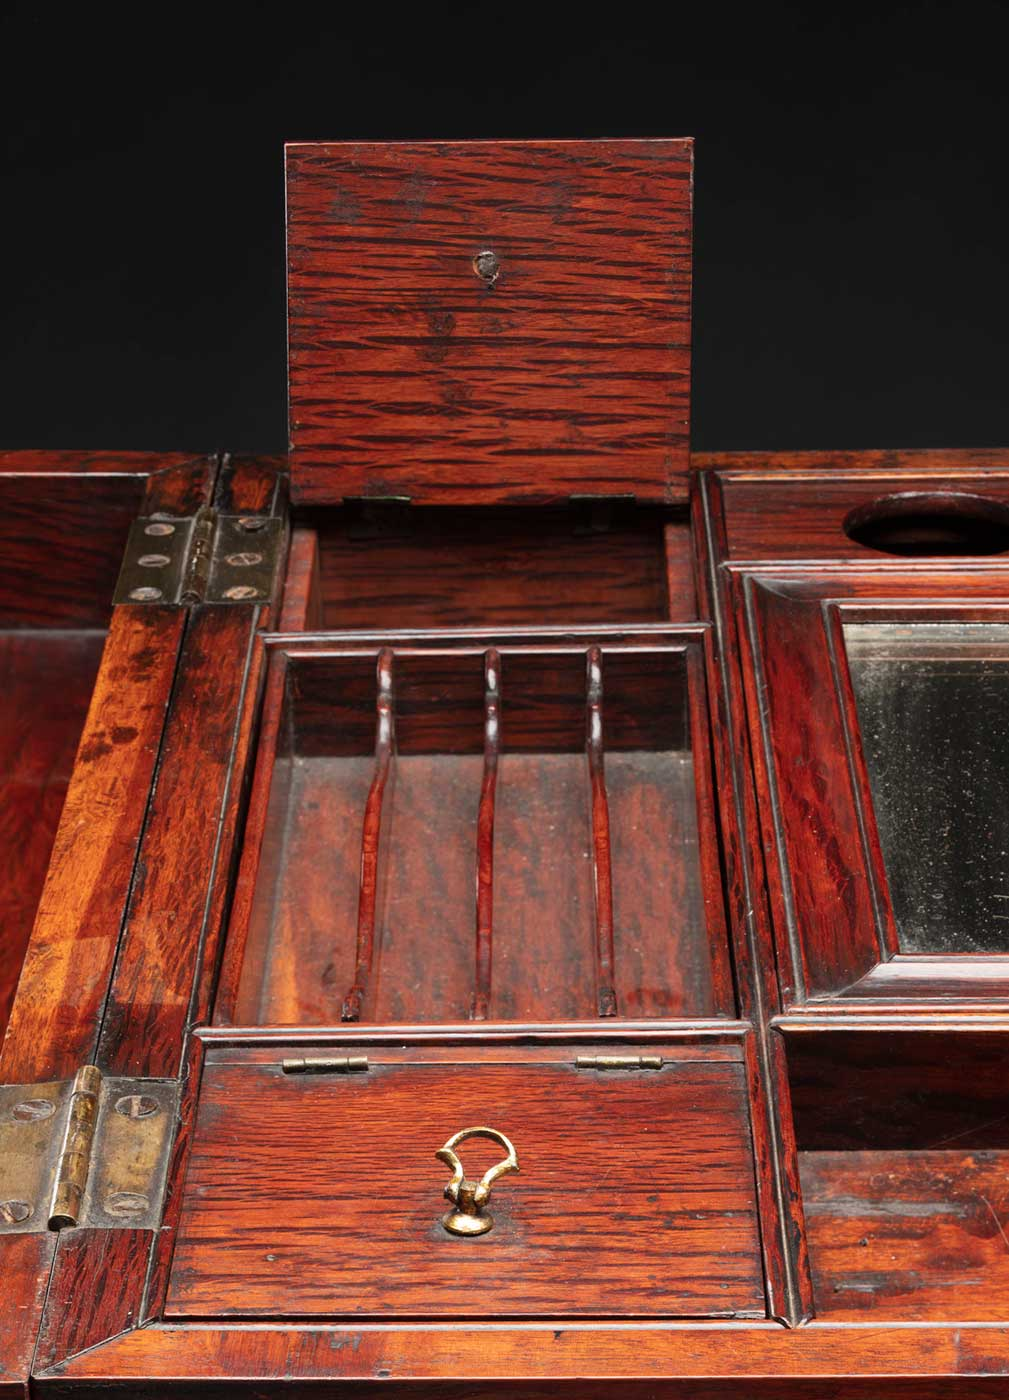 Detail of a wooden dresser table with multiple compartments. - click to view larger image